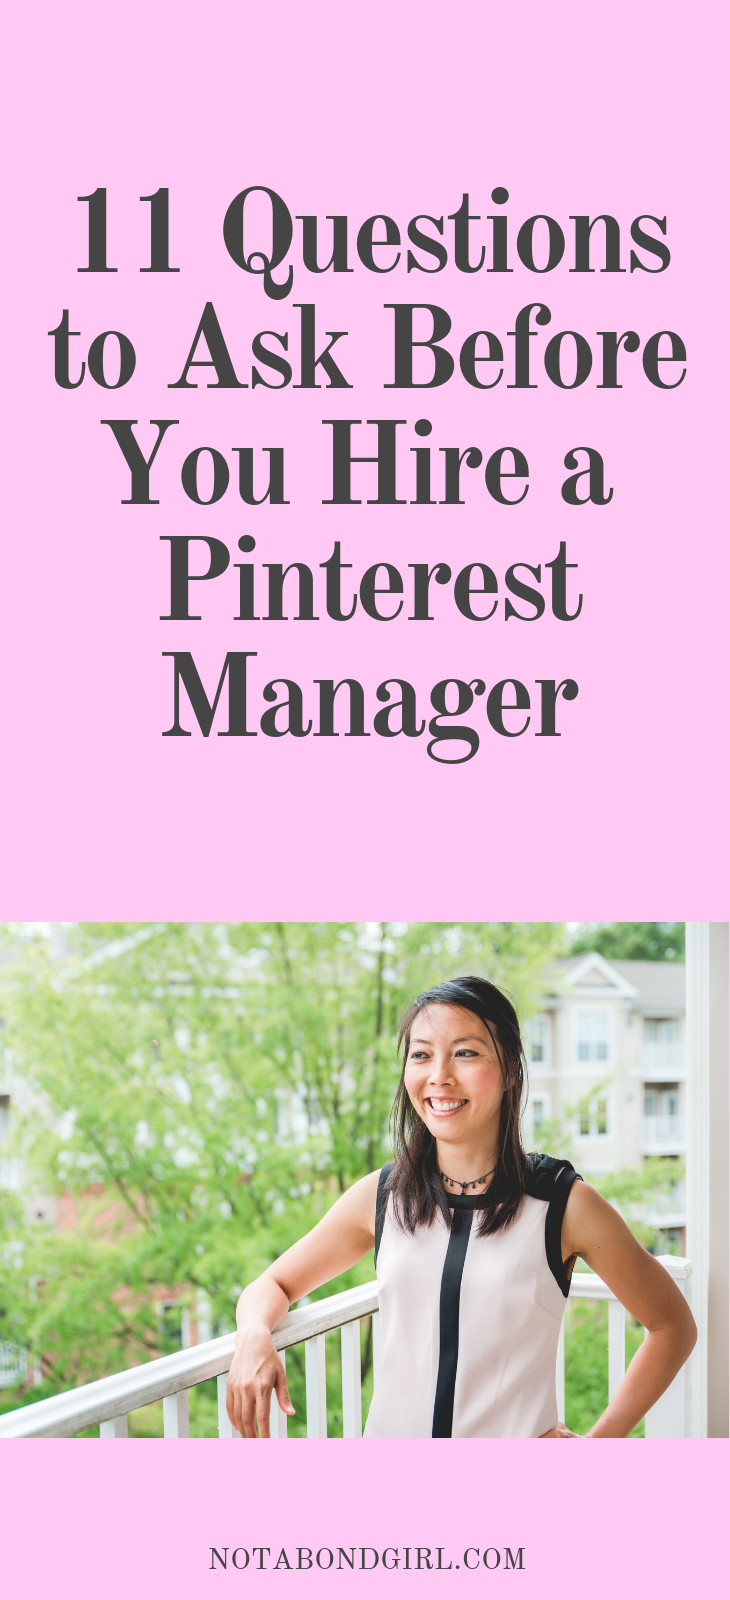 11 Questions to Ask a Pinterest Manager Before Hiring